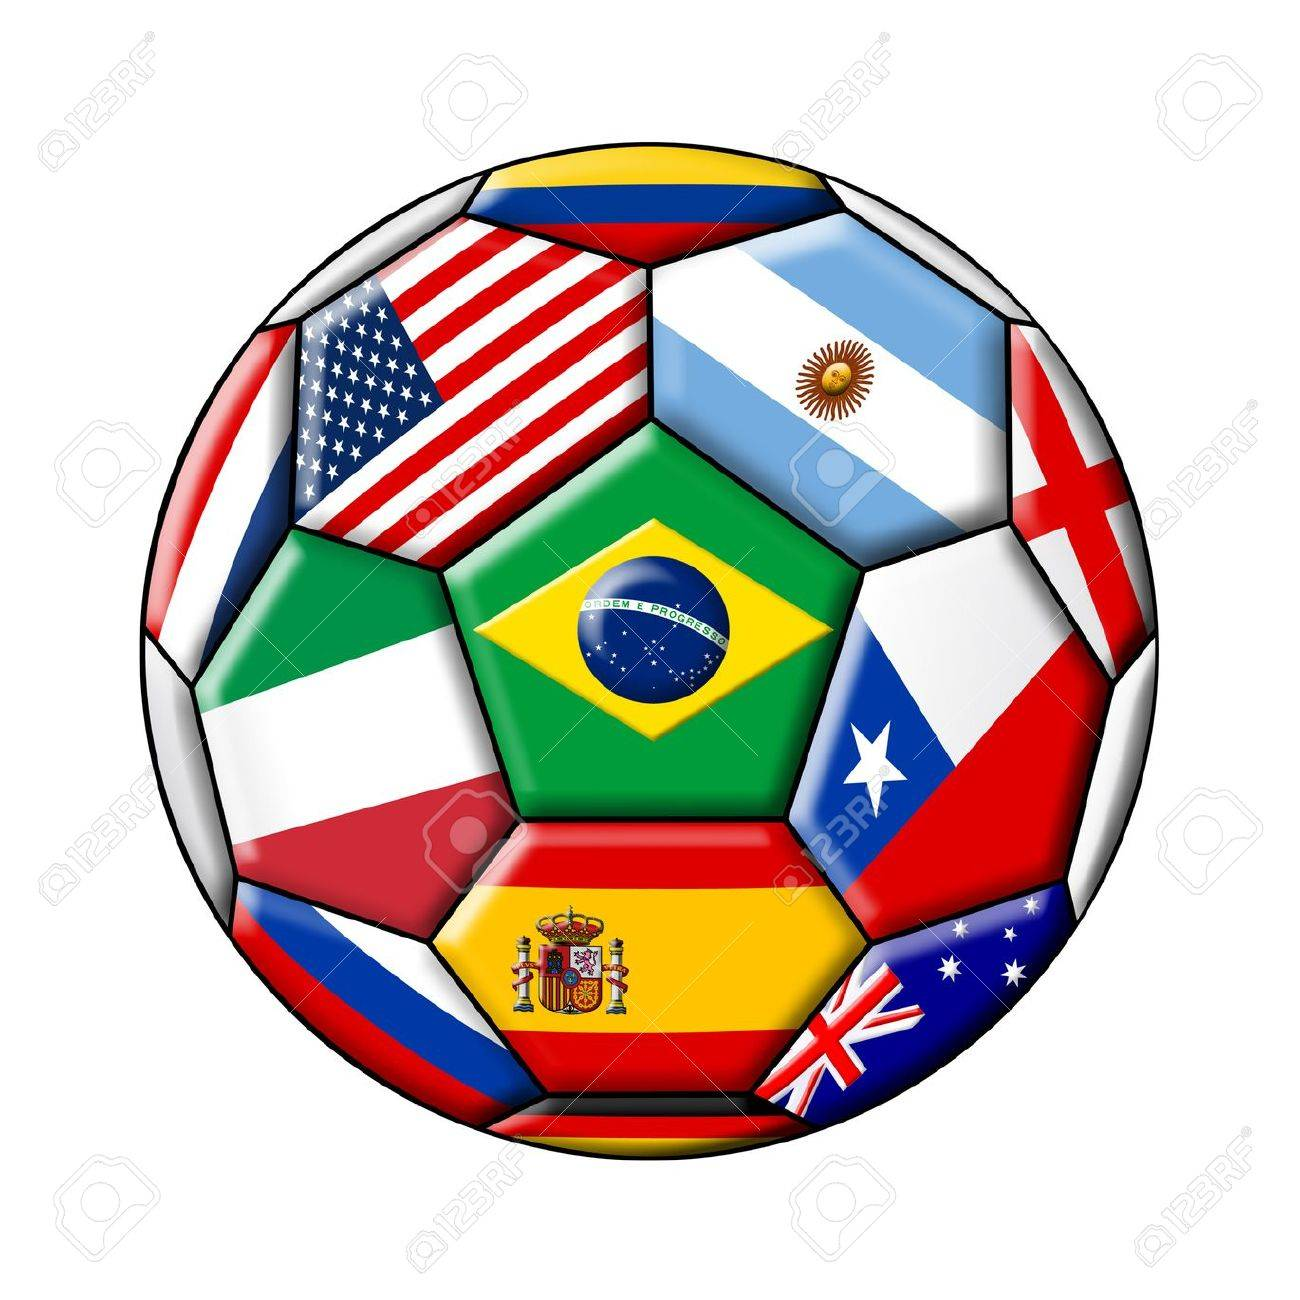 soccer with flags isolated on a white background - 24035740